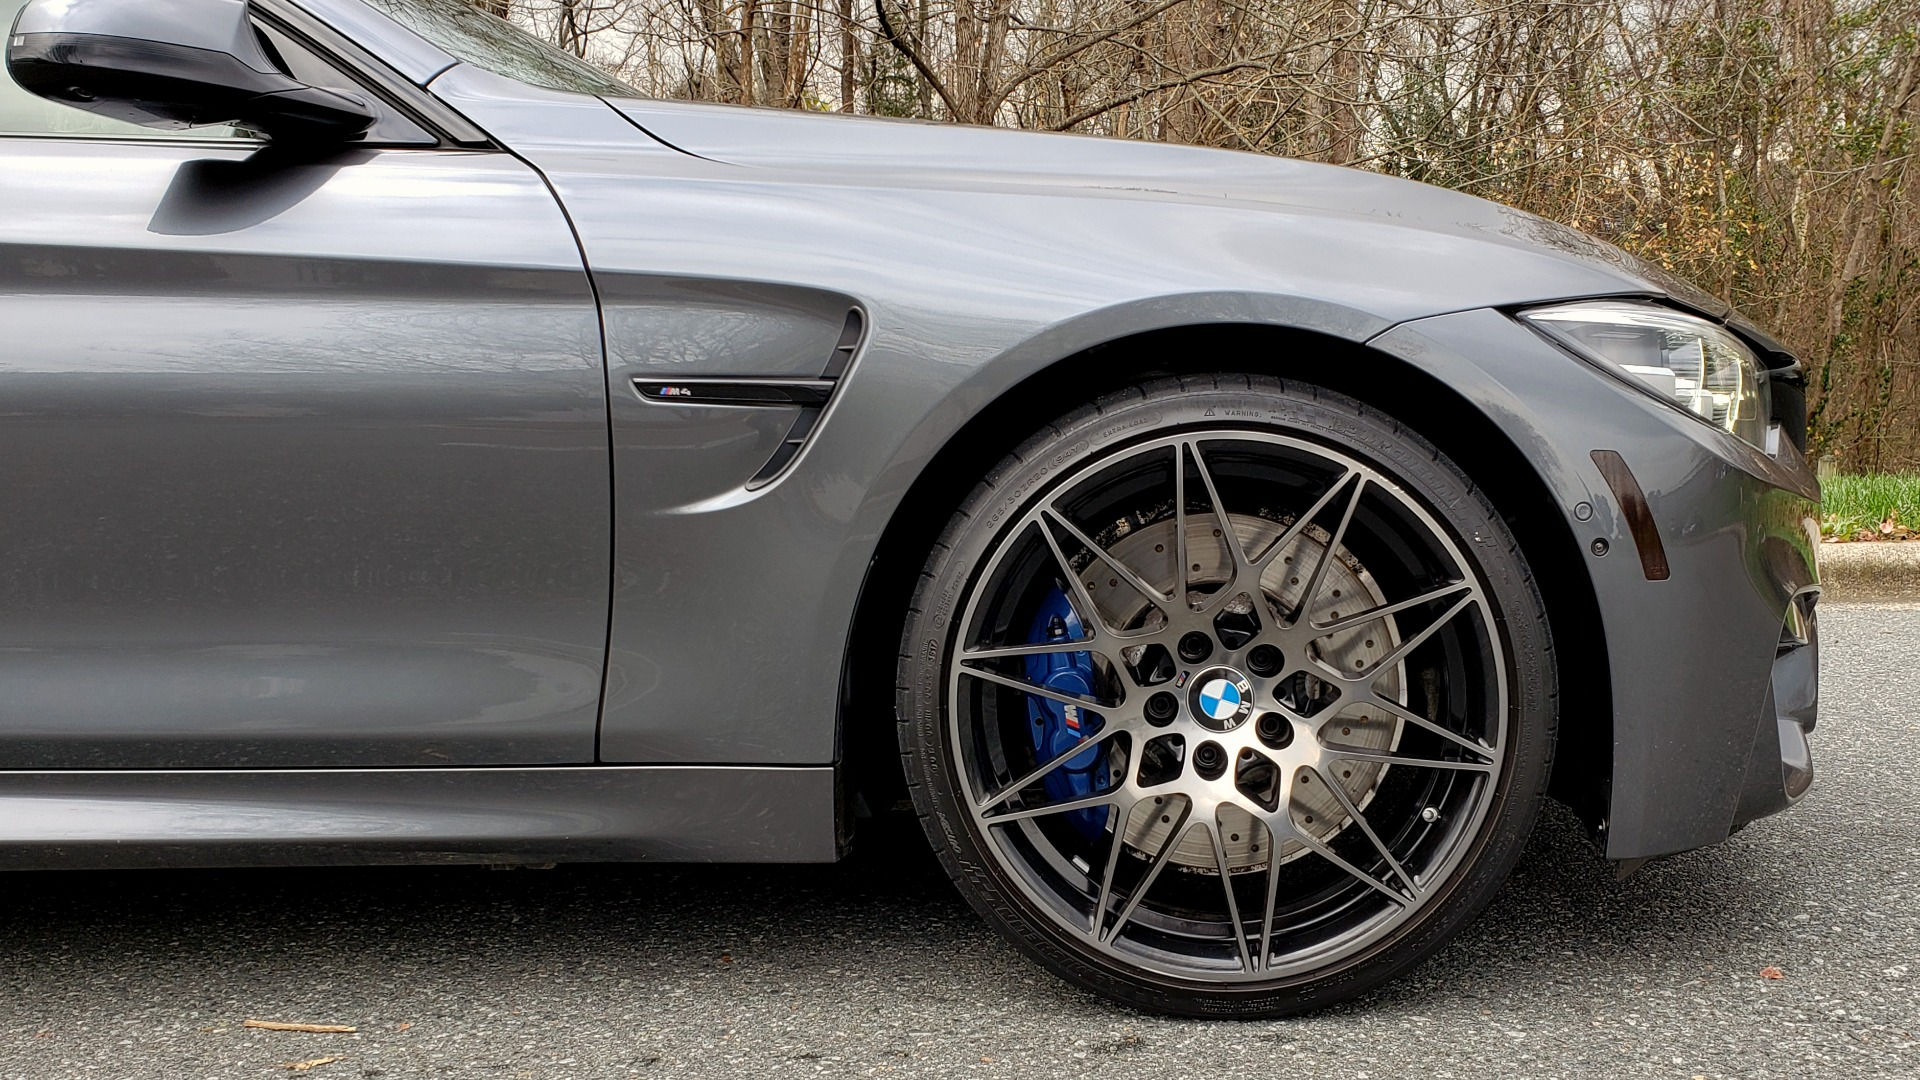 Used 2018 BMW M4 M-COMP / EXEC PKG / 7-SPD DBL CLUTCH / NAV / REARVIEW for sale Sold at Formula Imports in Charlotte NC 28227 71